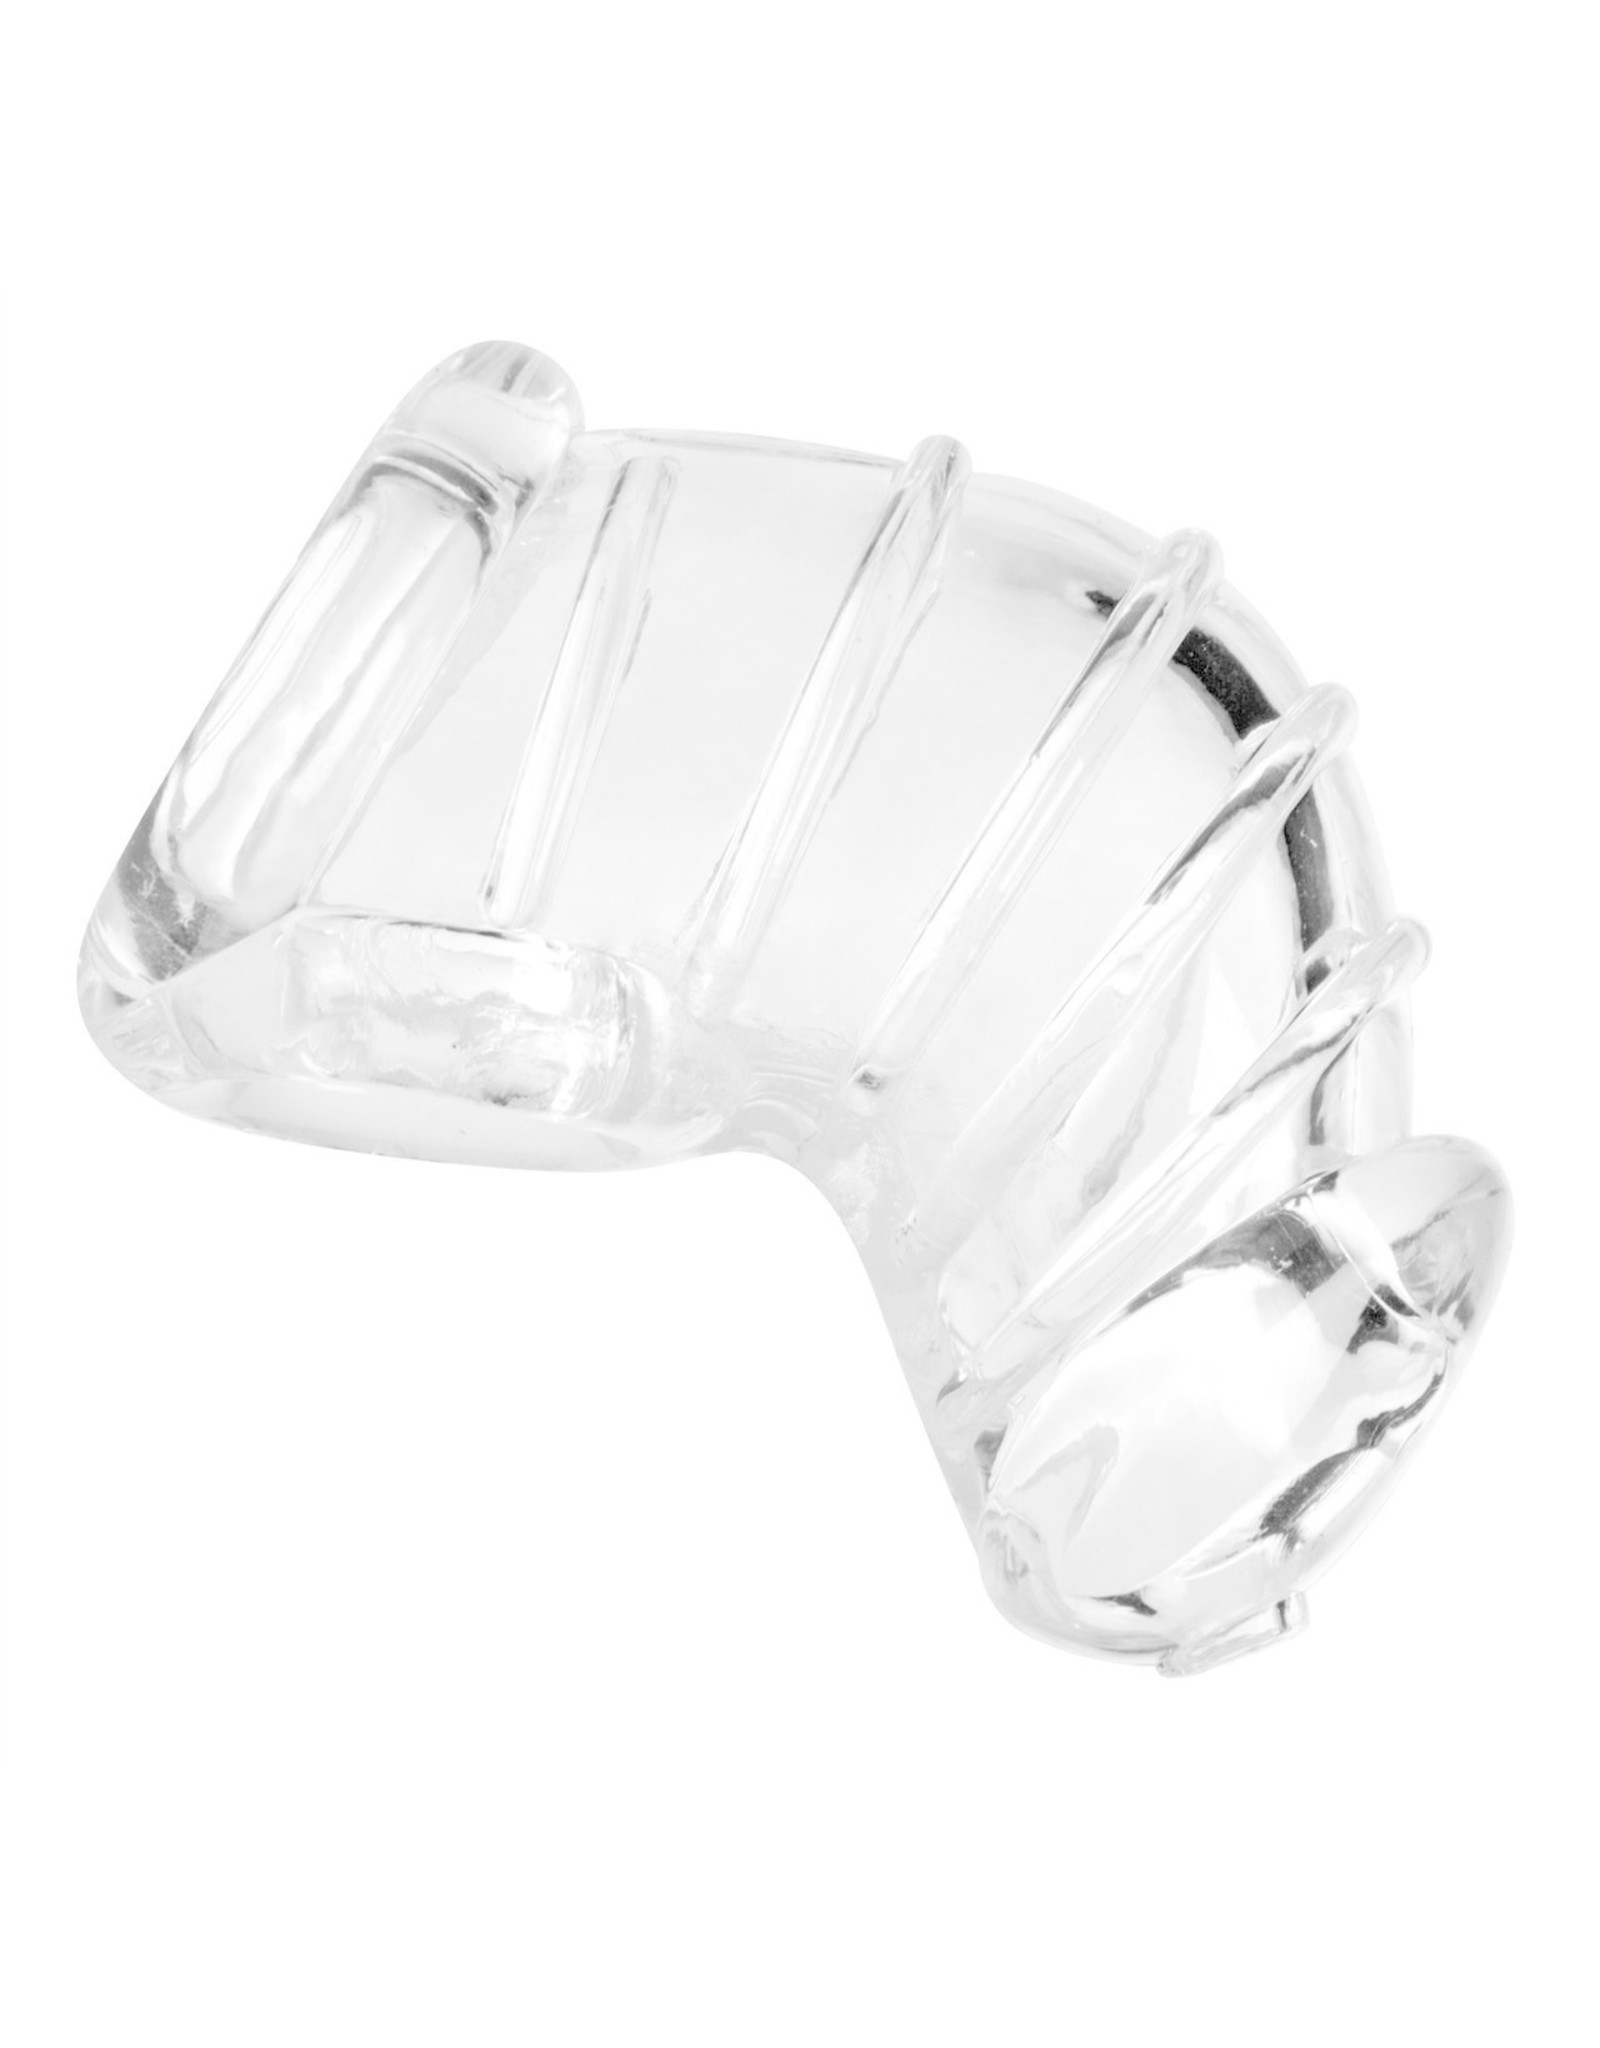 MASTER SERIES - DETAINED CHASTITY CAGE